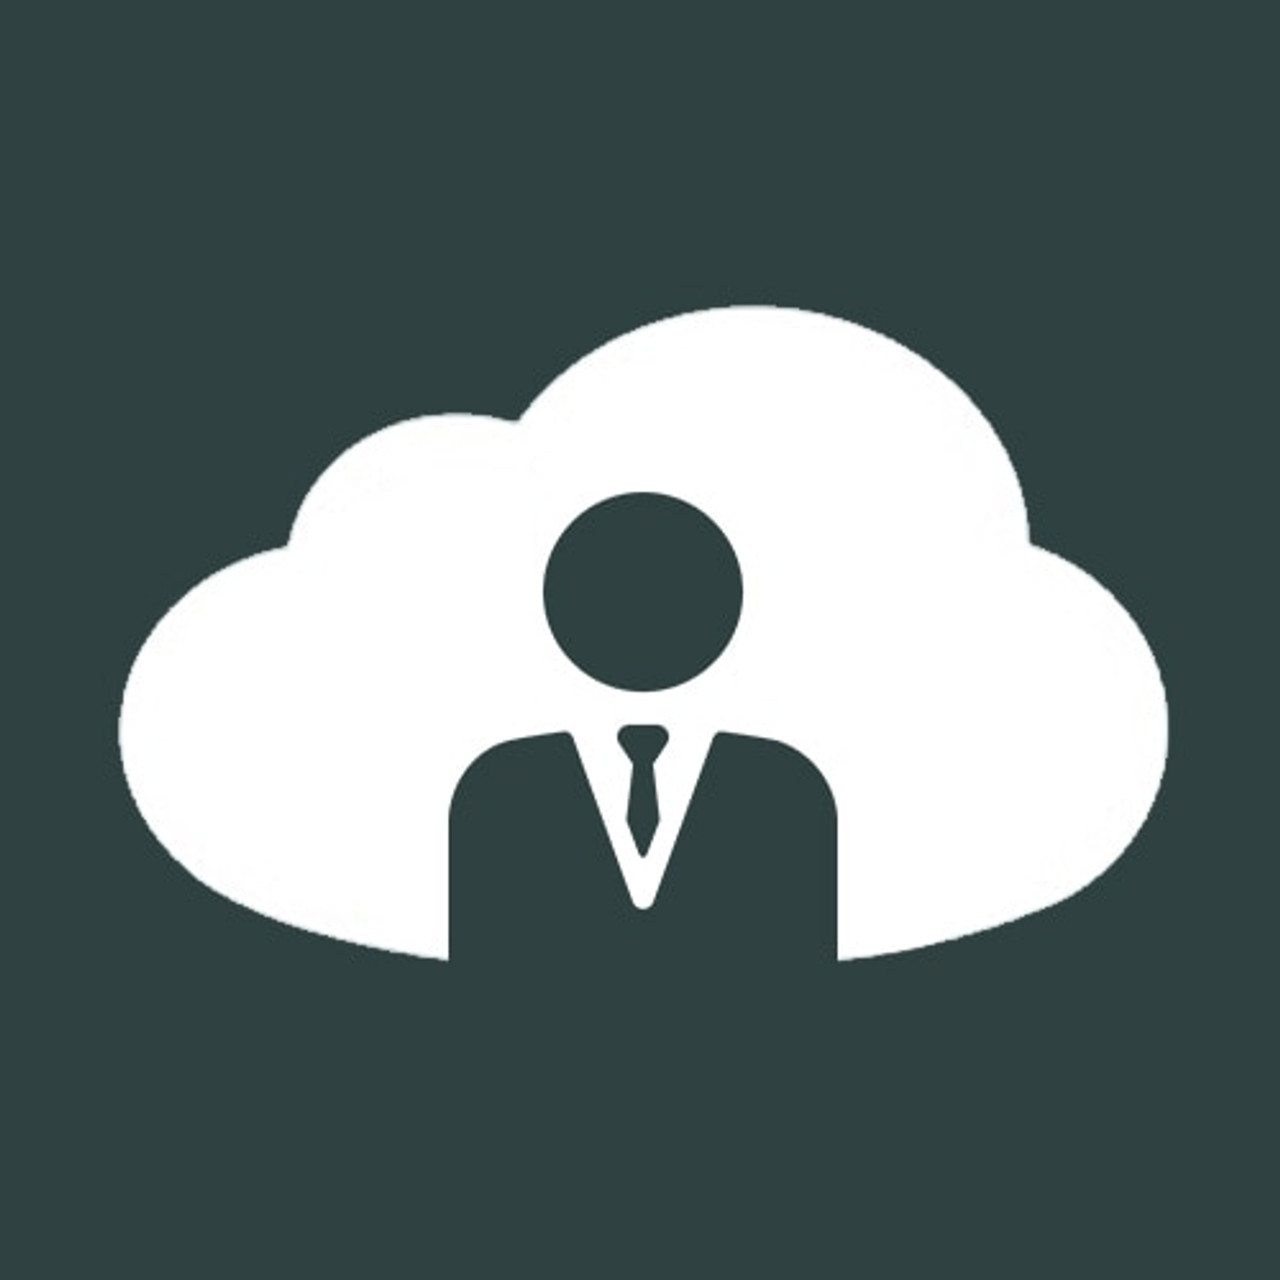 FortiGate-80E - FortiCloud Management, Analysis and 1 Year Log Retention - 60 months